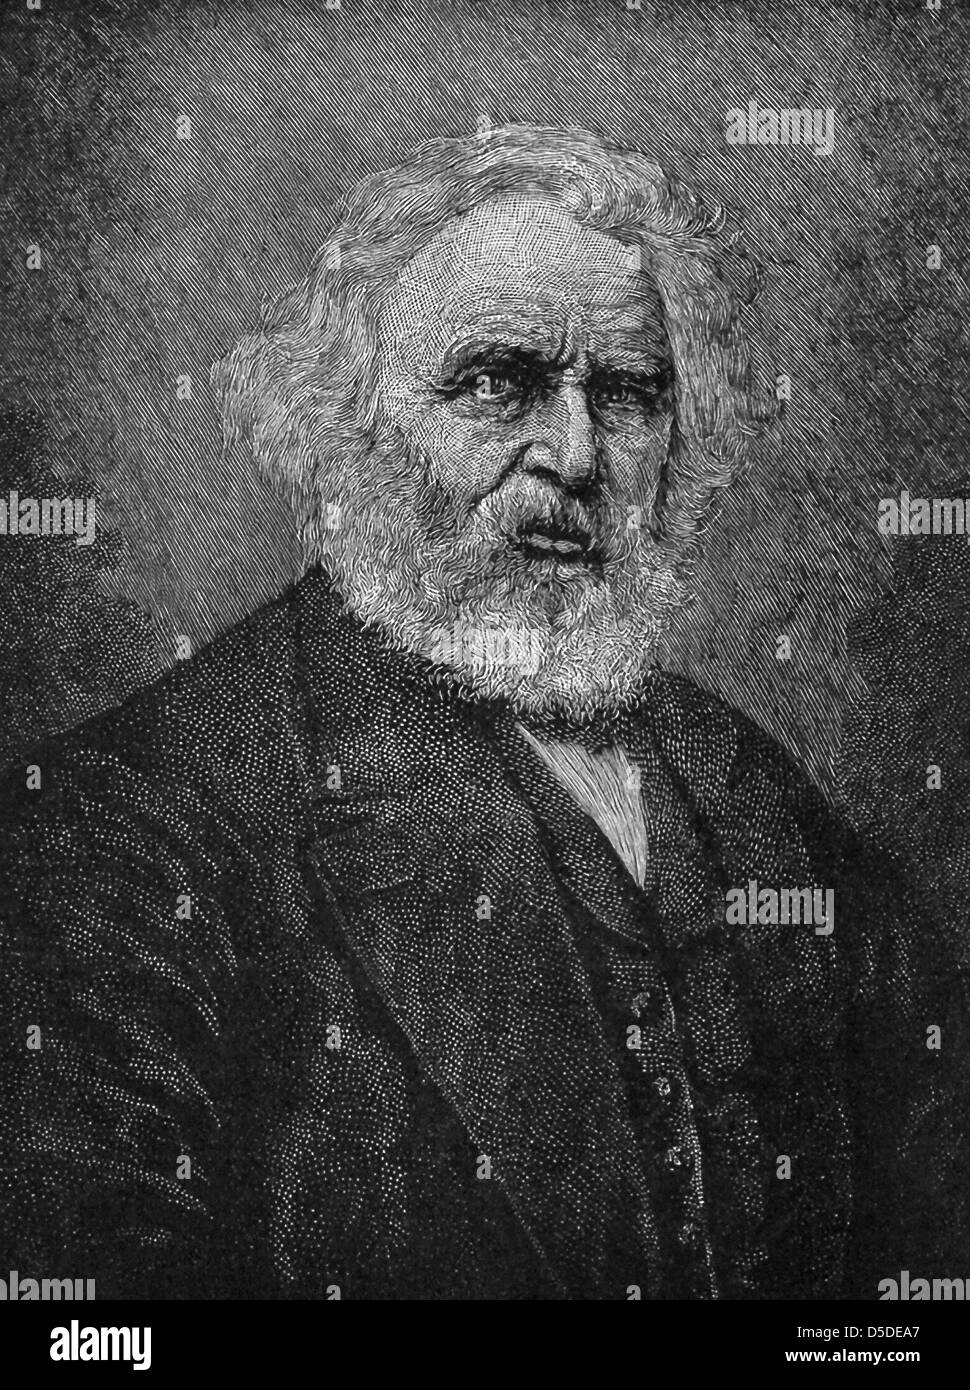 henry wadsworth longfellow an american poet and educator wrote  henry wadsworth longfellow an american poet and educator wrote paul revere s ride hiawatha and evangeline